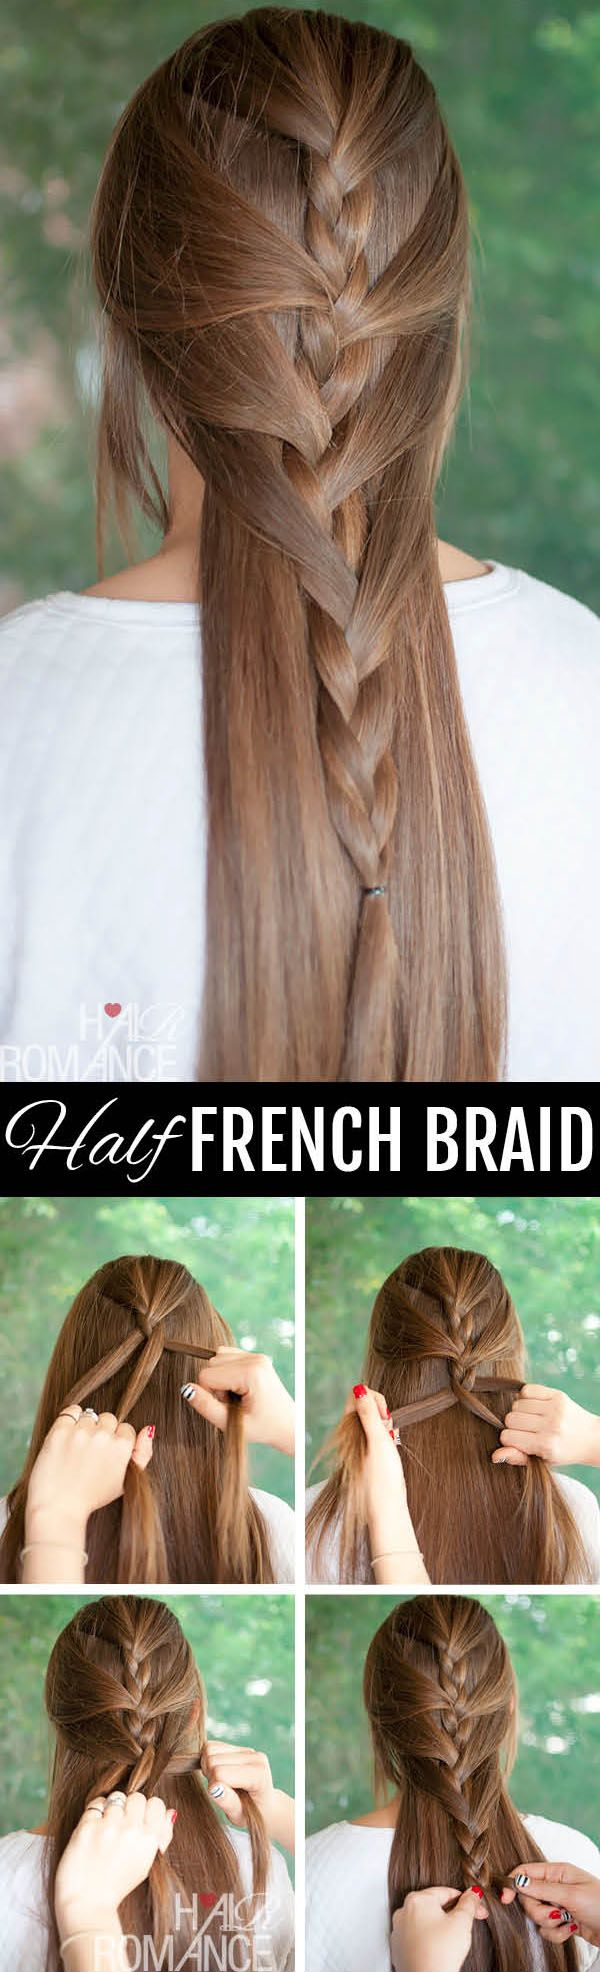 images about cute hair on pinterest coiffures updo and buns